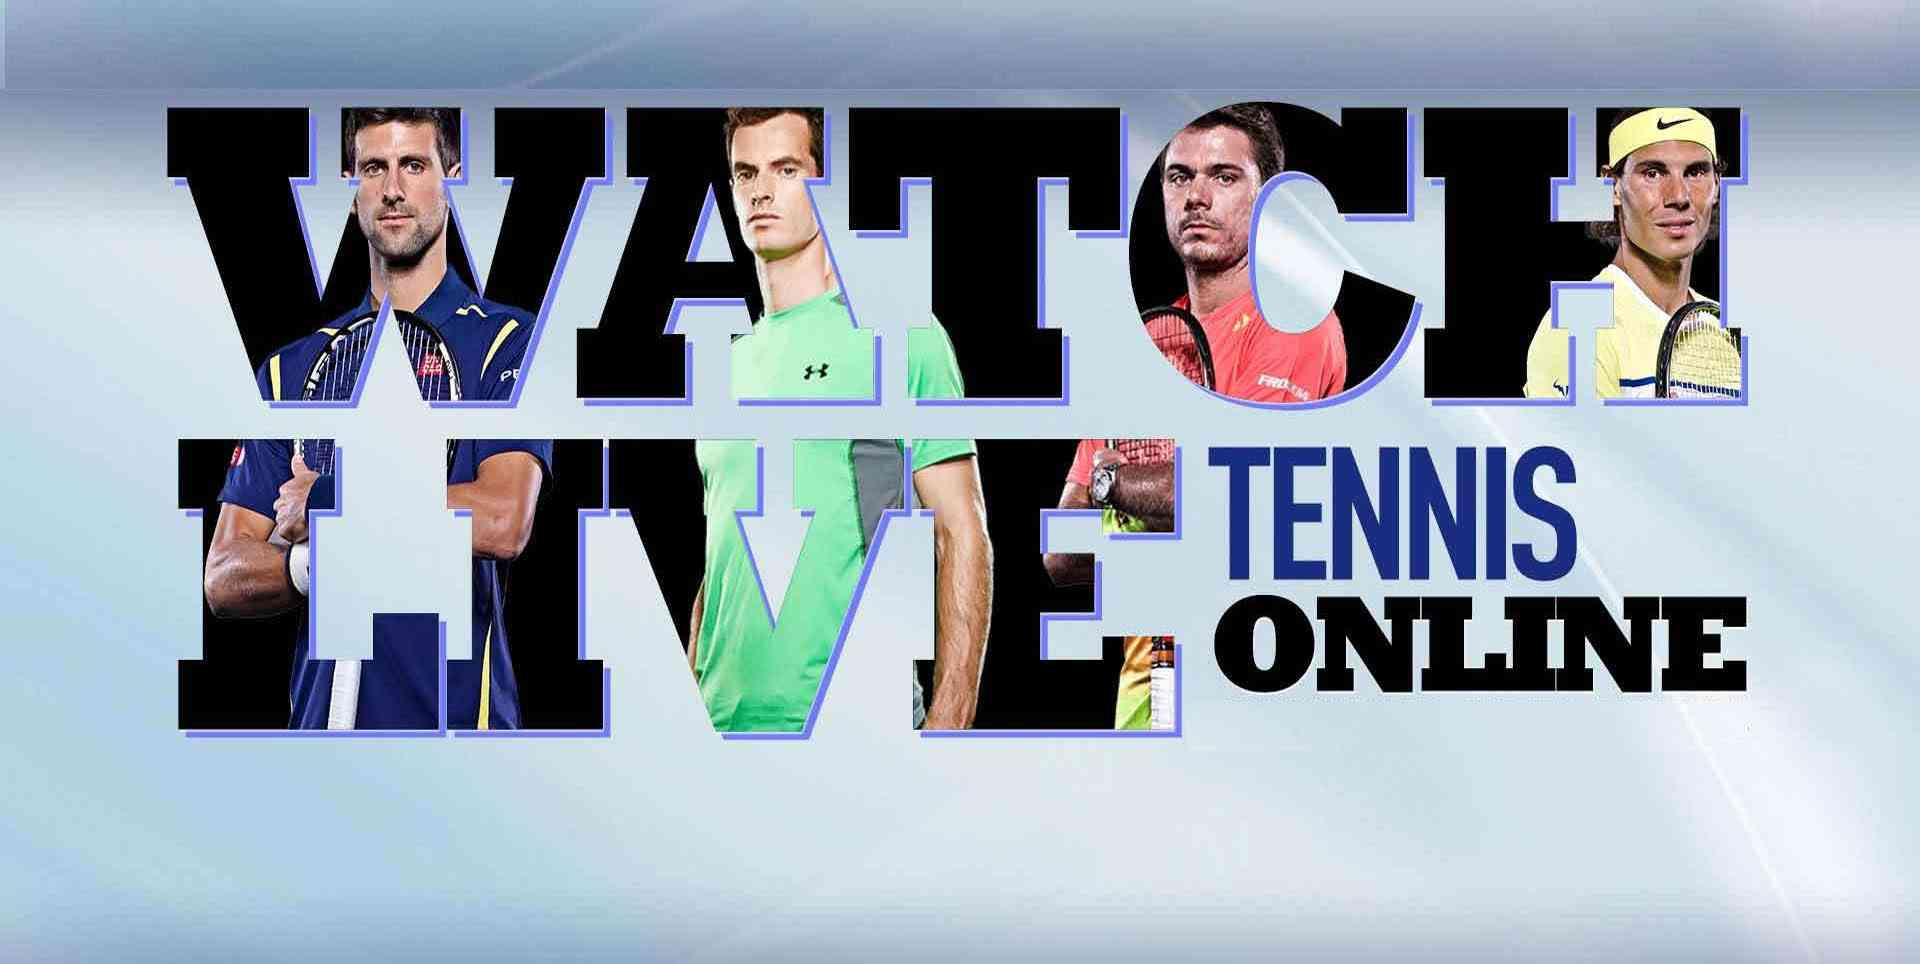 Watch R. Nadal vs D. Thiem 2nd Round Online